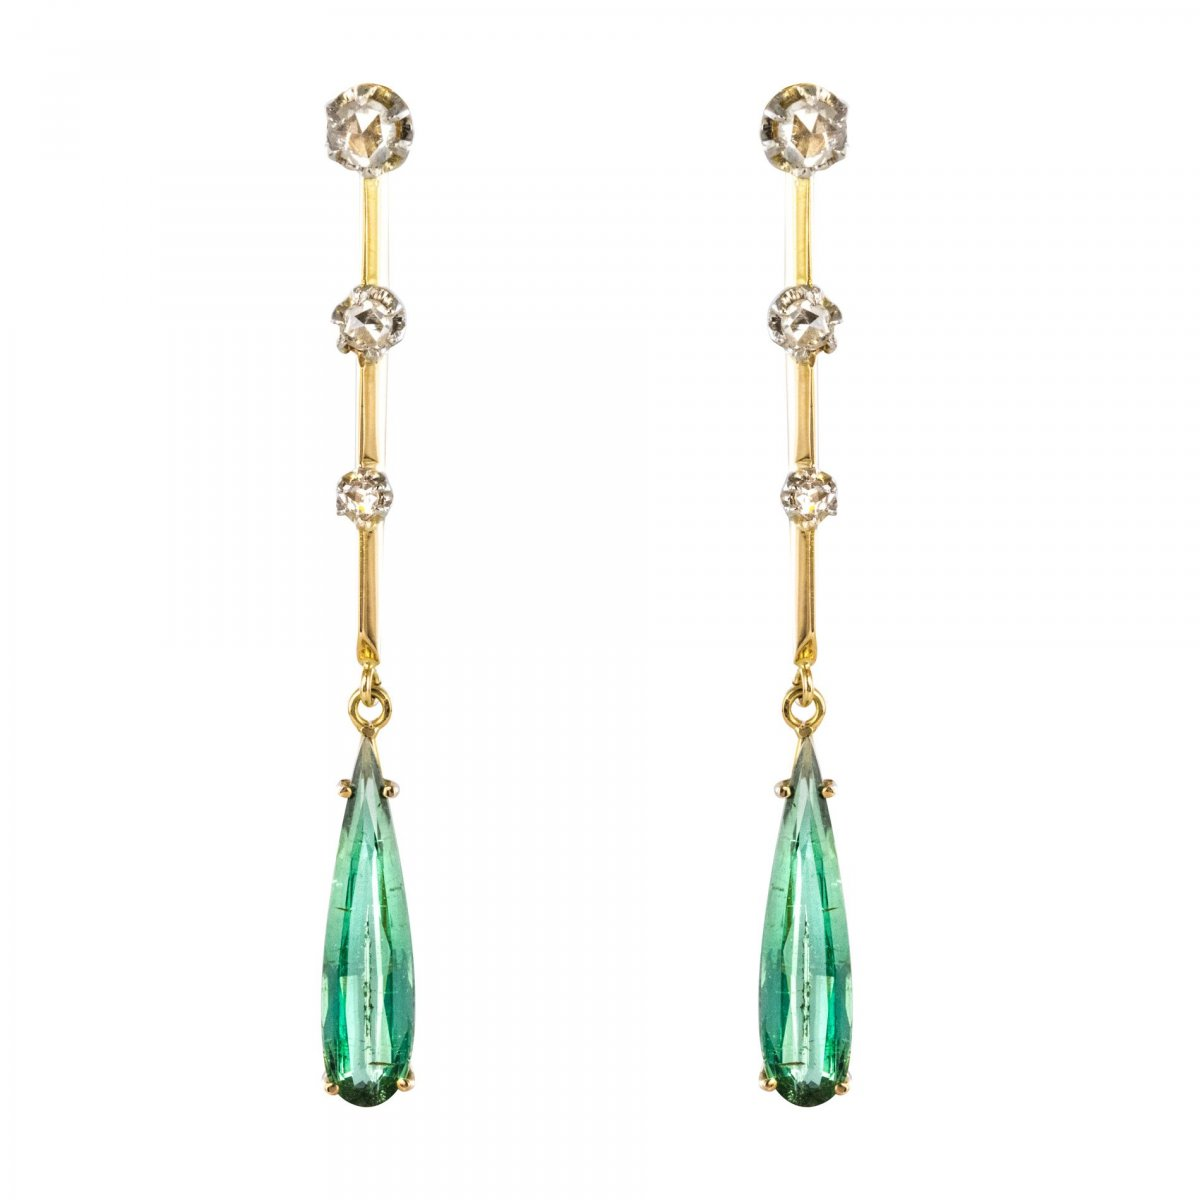 Antique Diamond And Tourmaline Drop Earrings